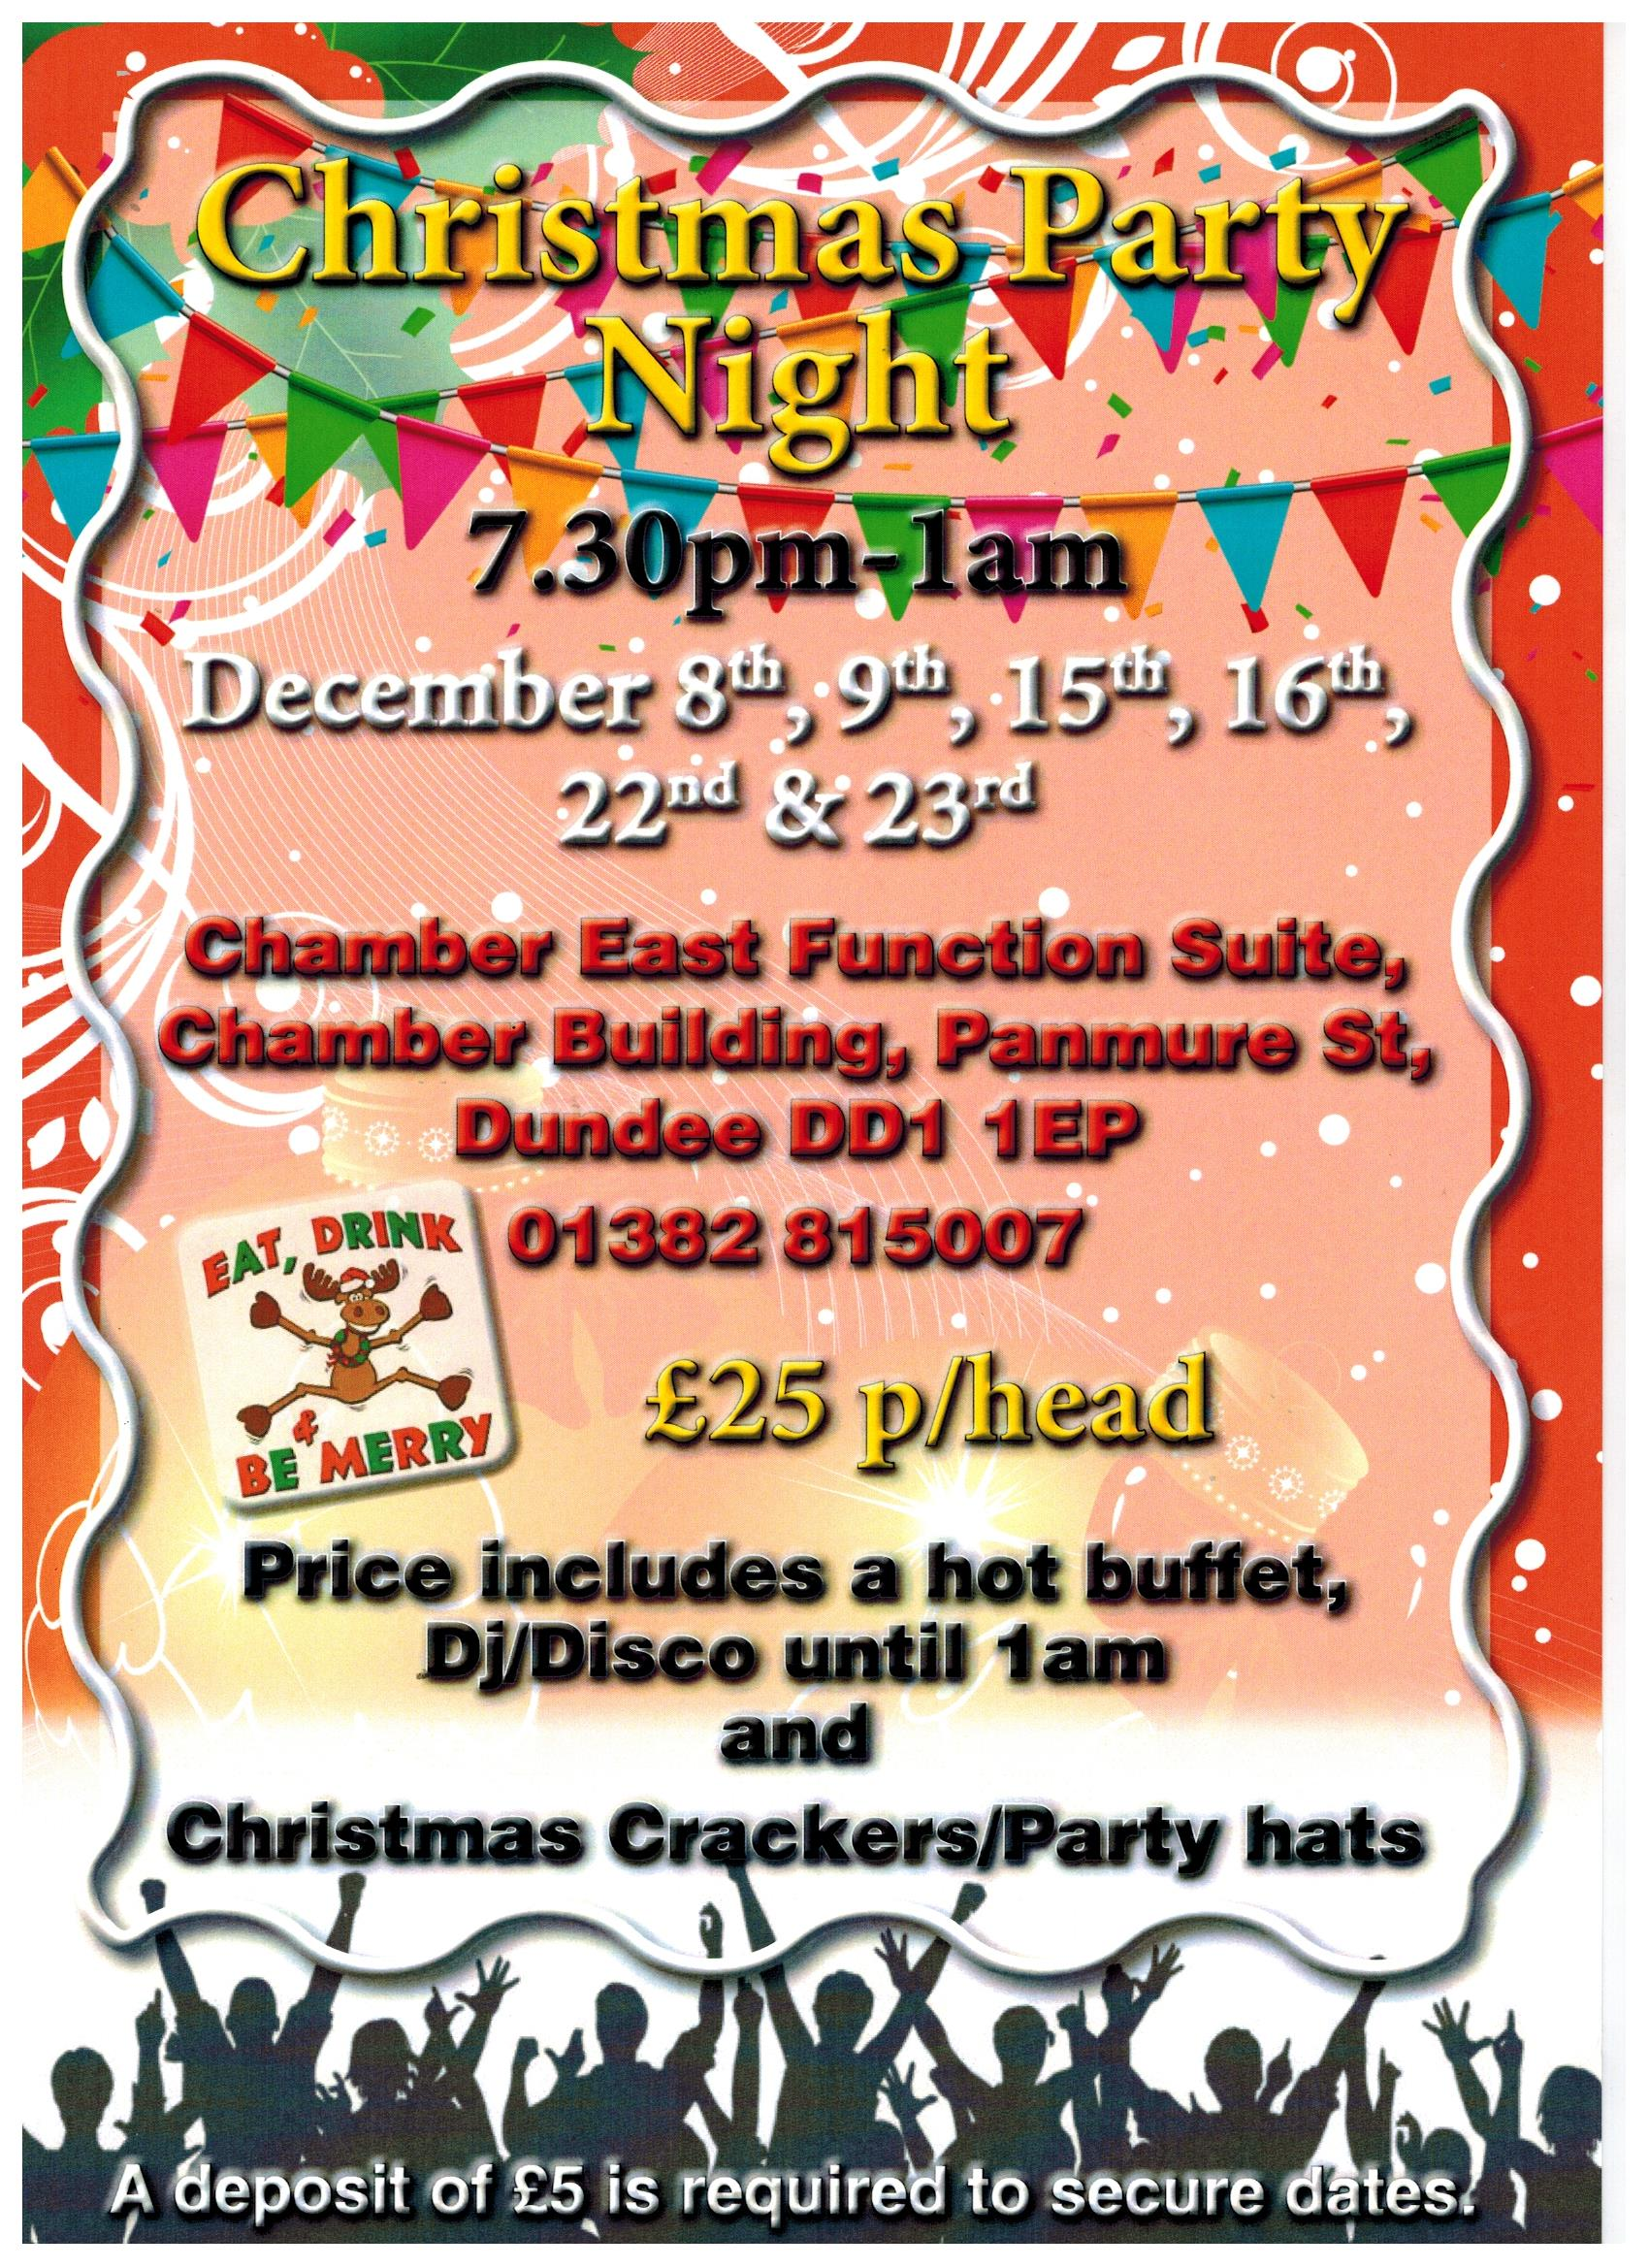 Christmas party nights at Chamber East